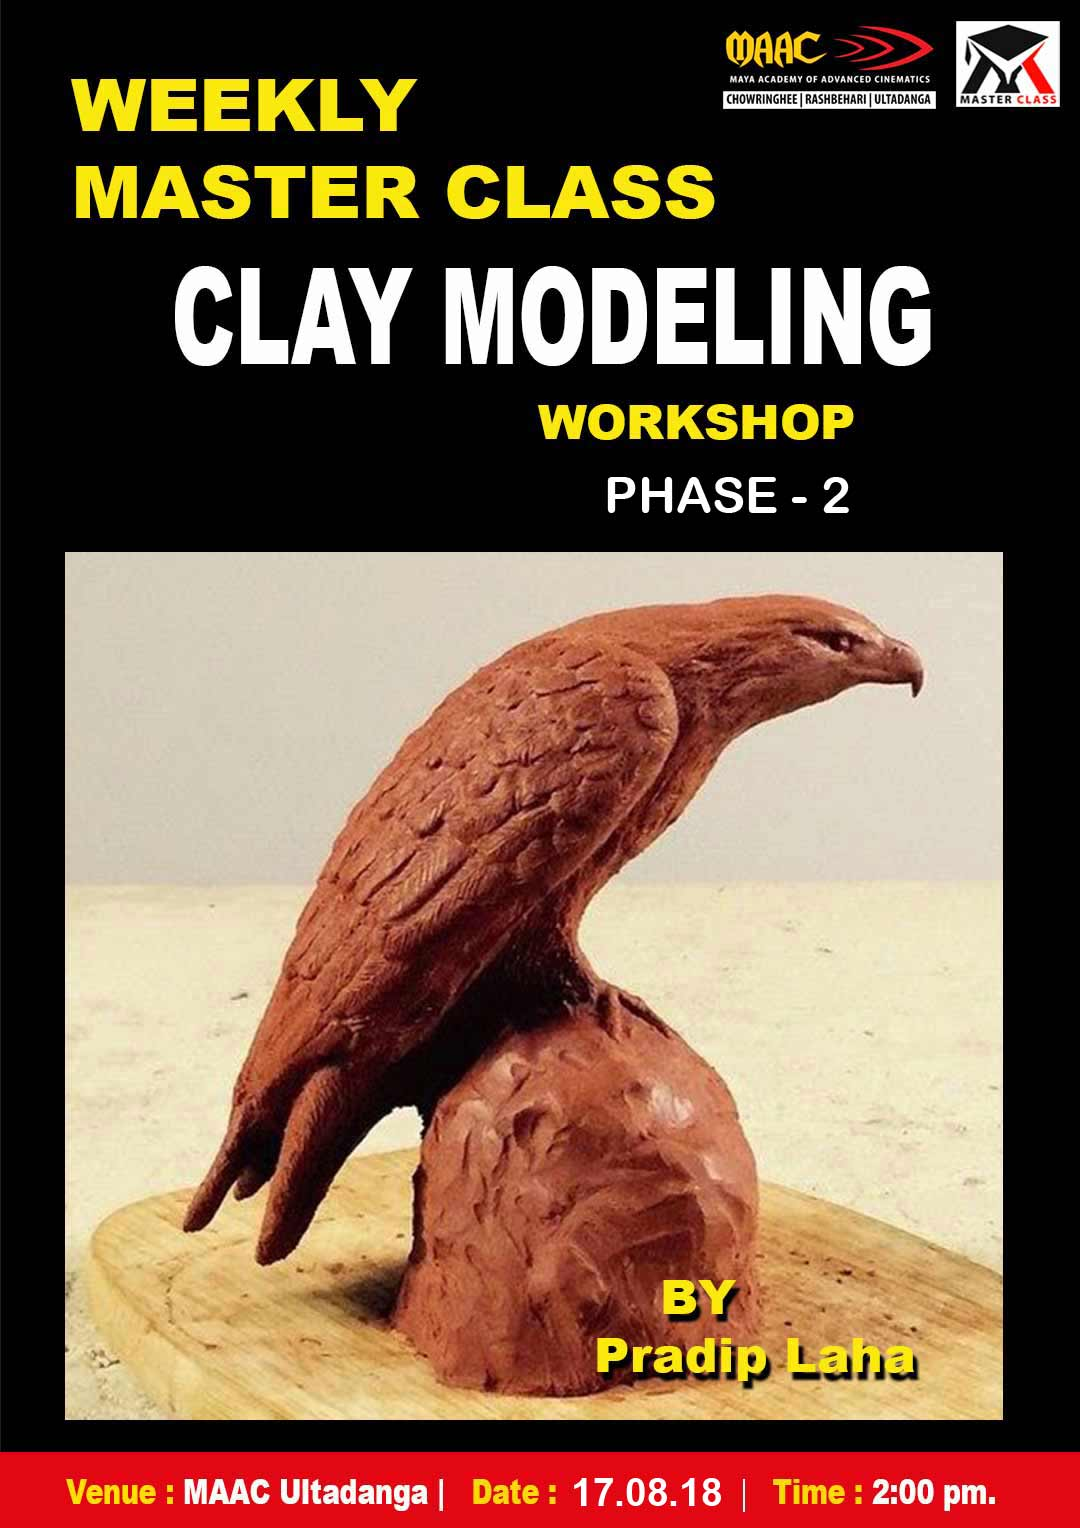 Weekly Master Class on Clay Modeling Phase-2